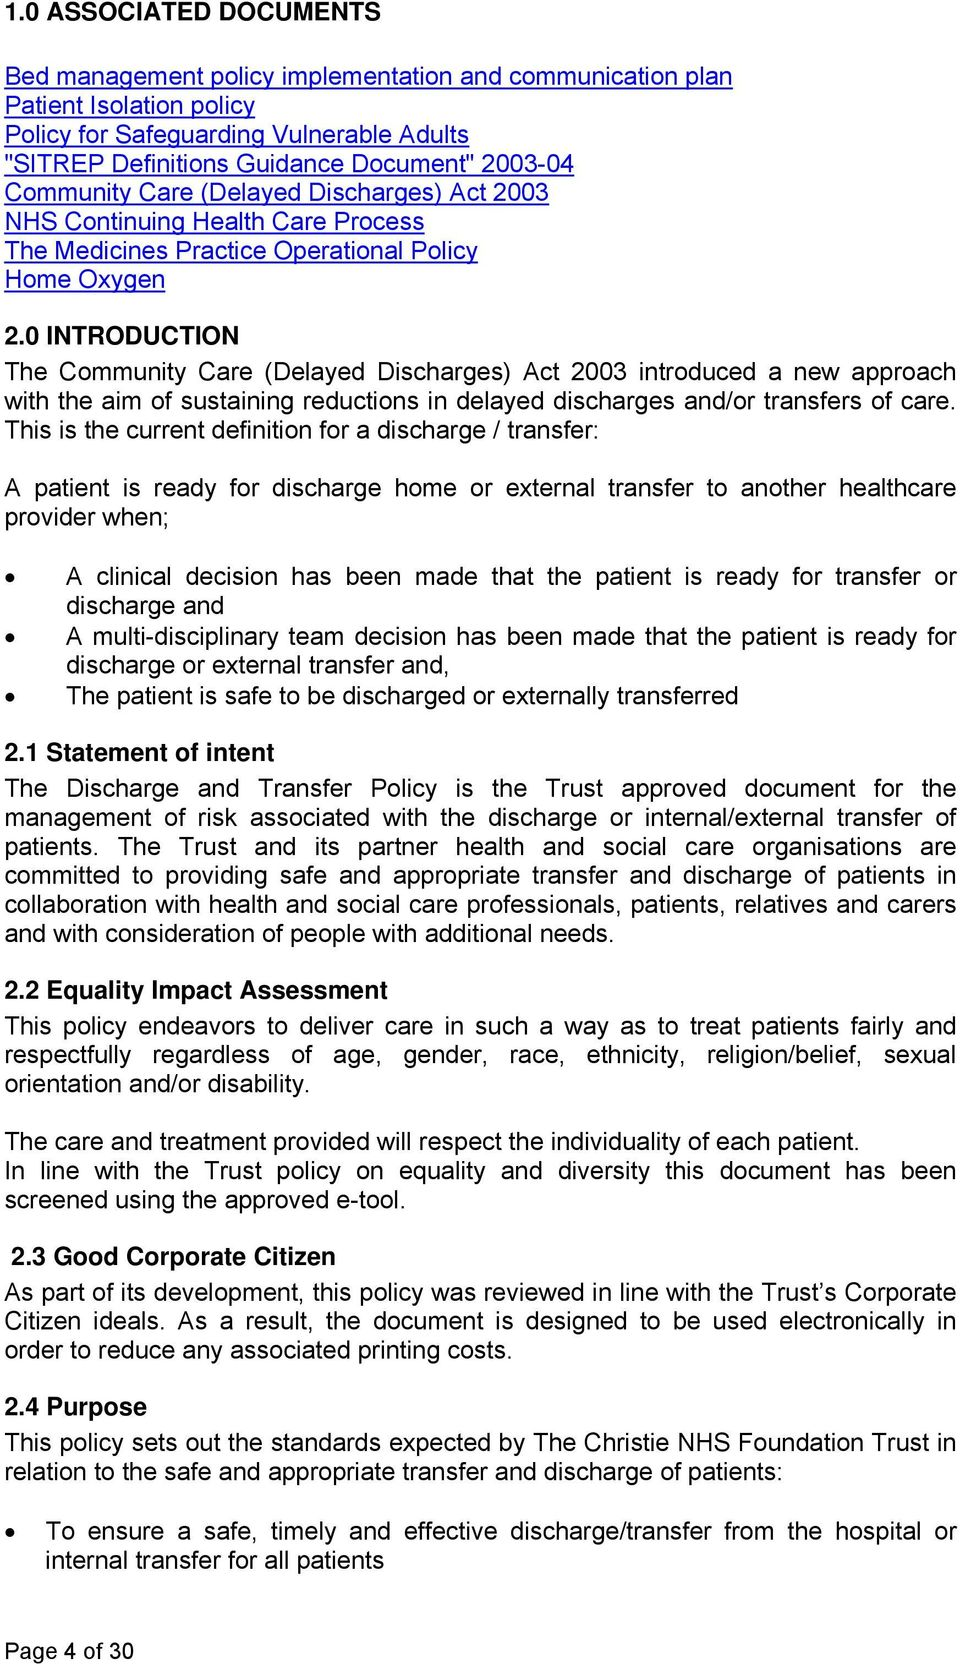 0 INTRODUCTION The Community Care (Delayed Discharges) Act 2003 introduced a new approach with the aim of sustaining reductions in delayed discharges and/or transfers of care.